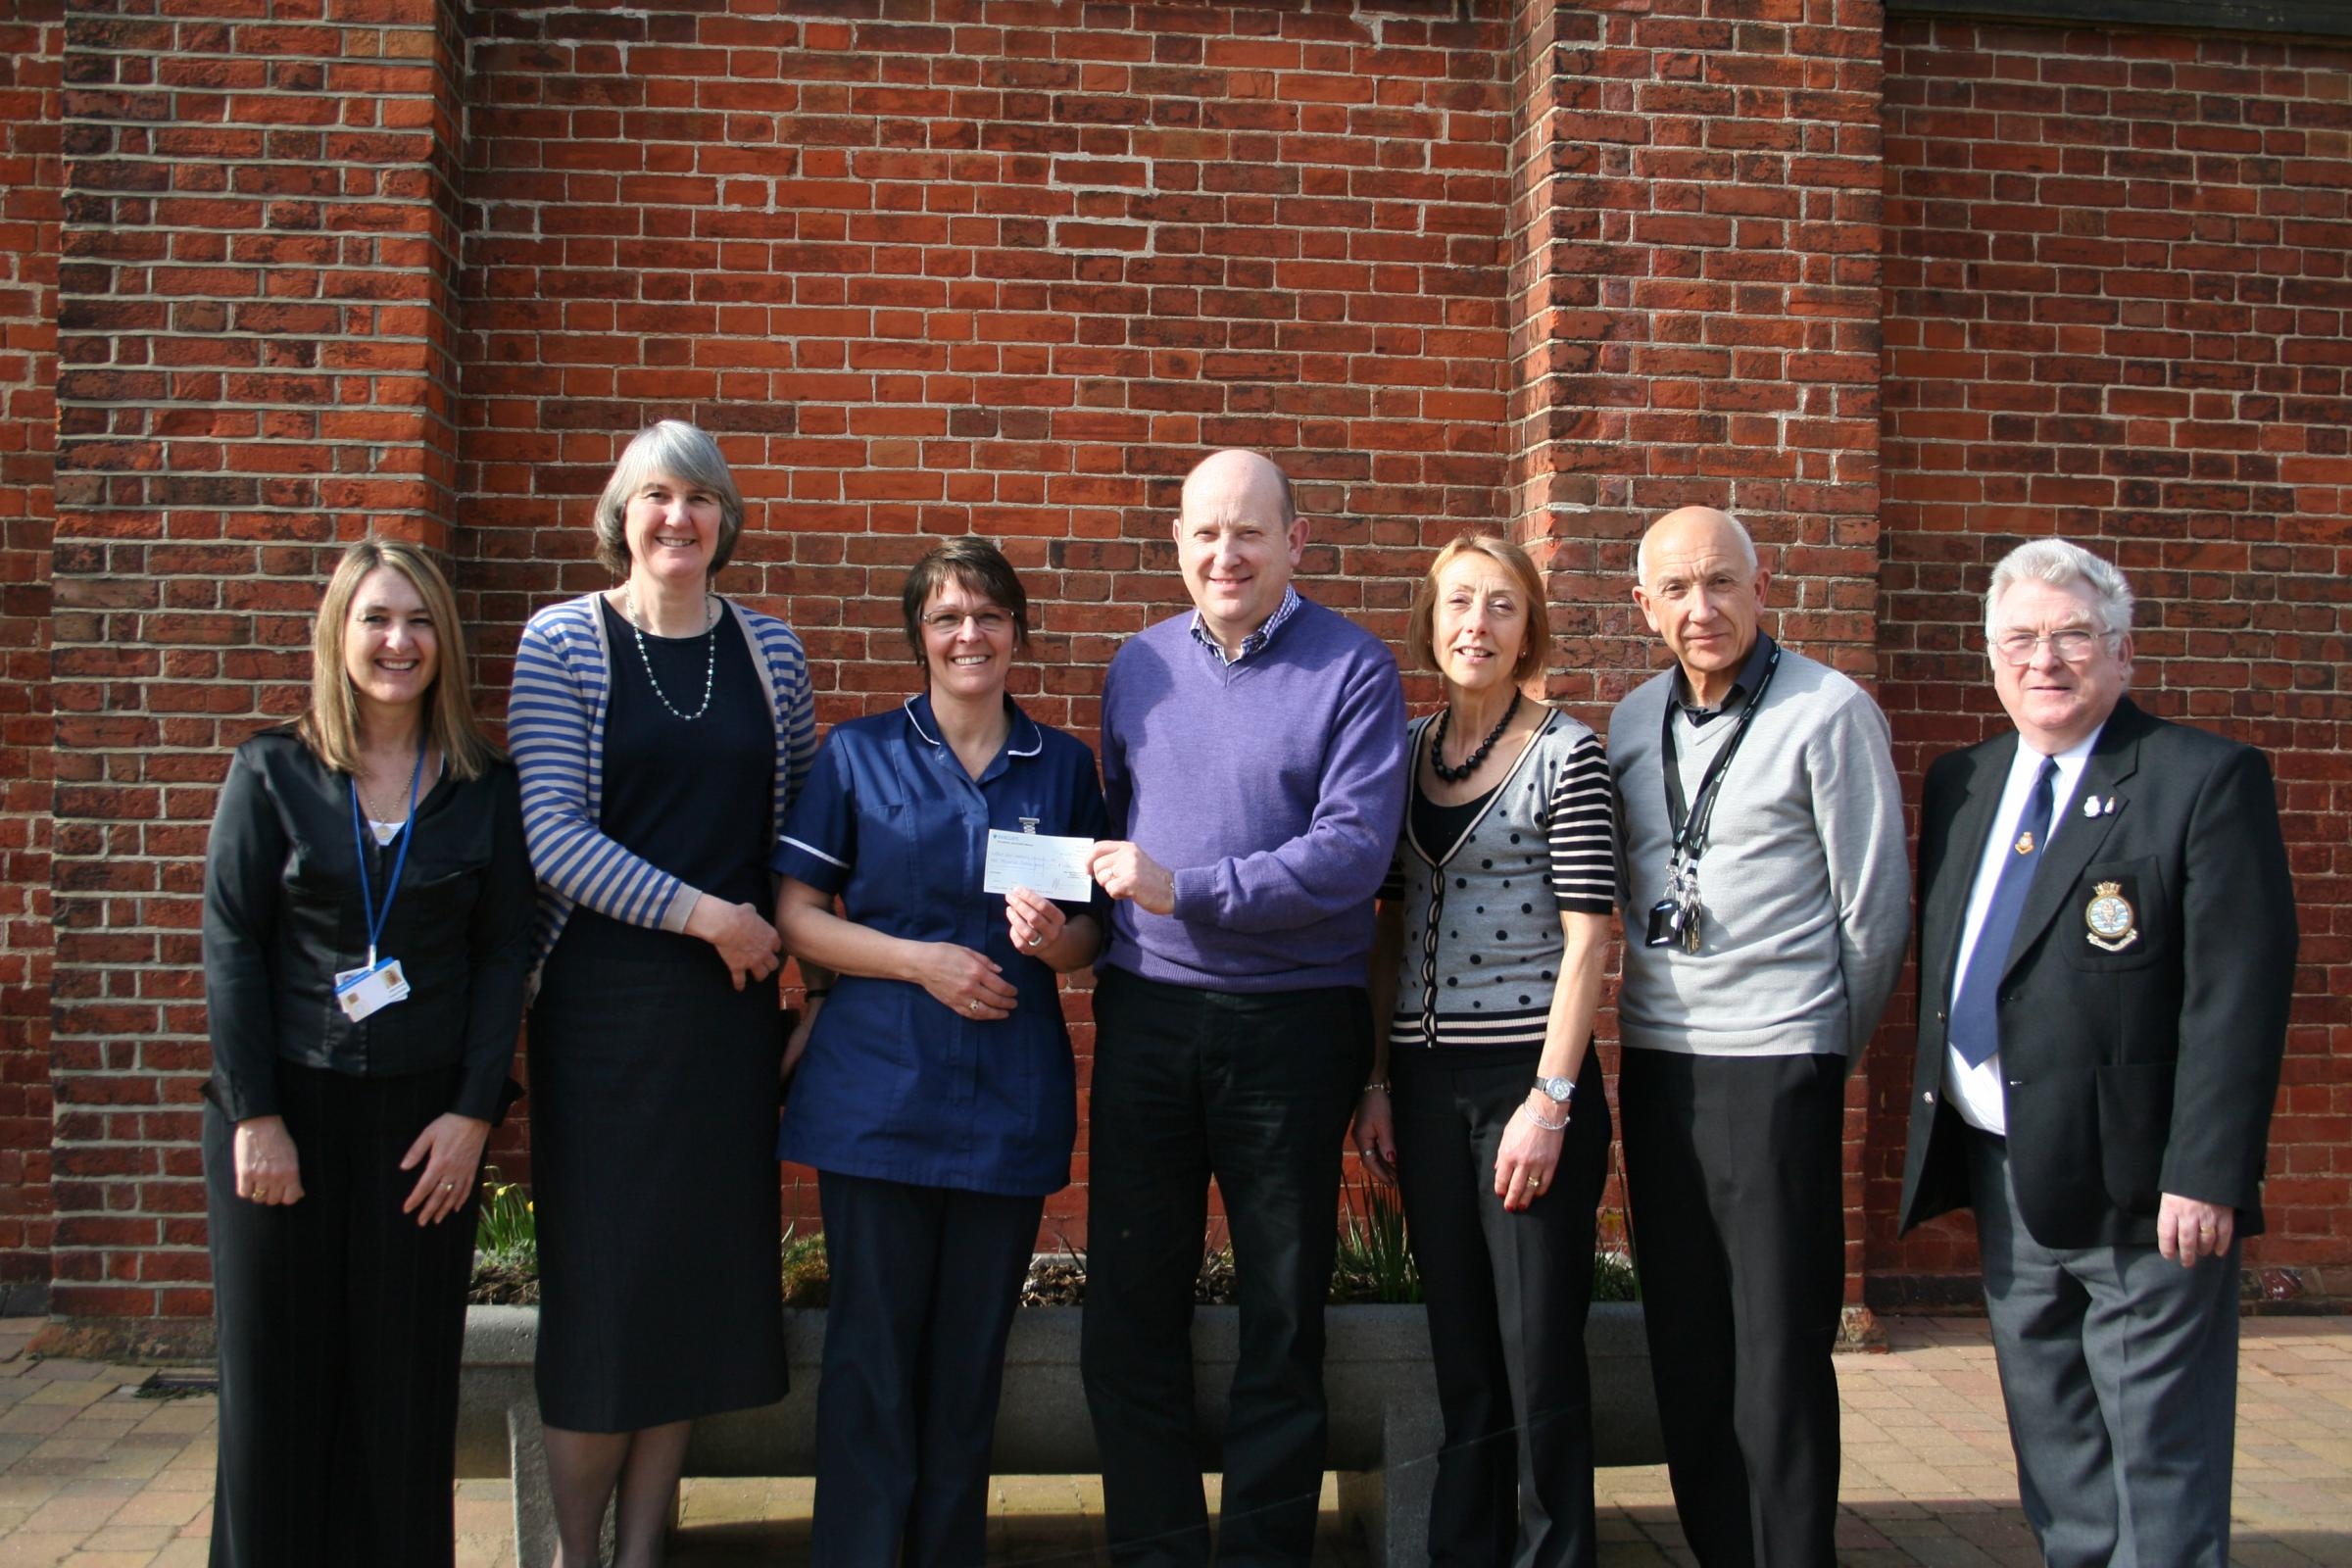 Members of the Creffield Medical Centre present a cheque to Help for Heroes